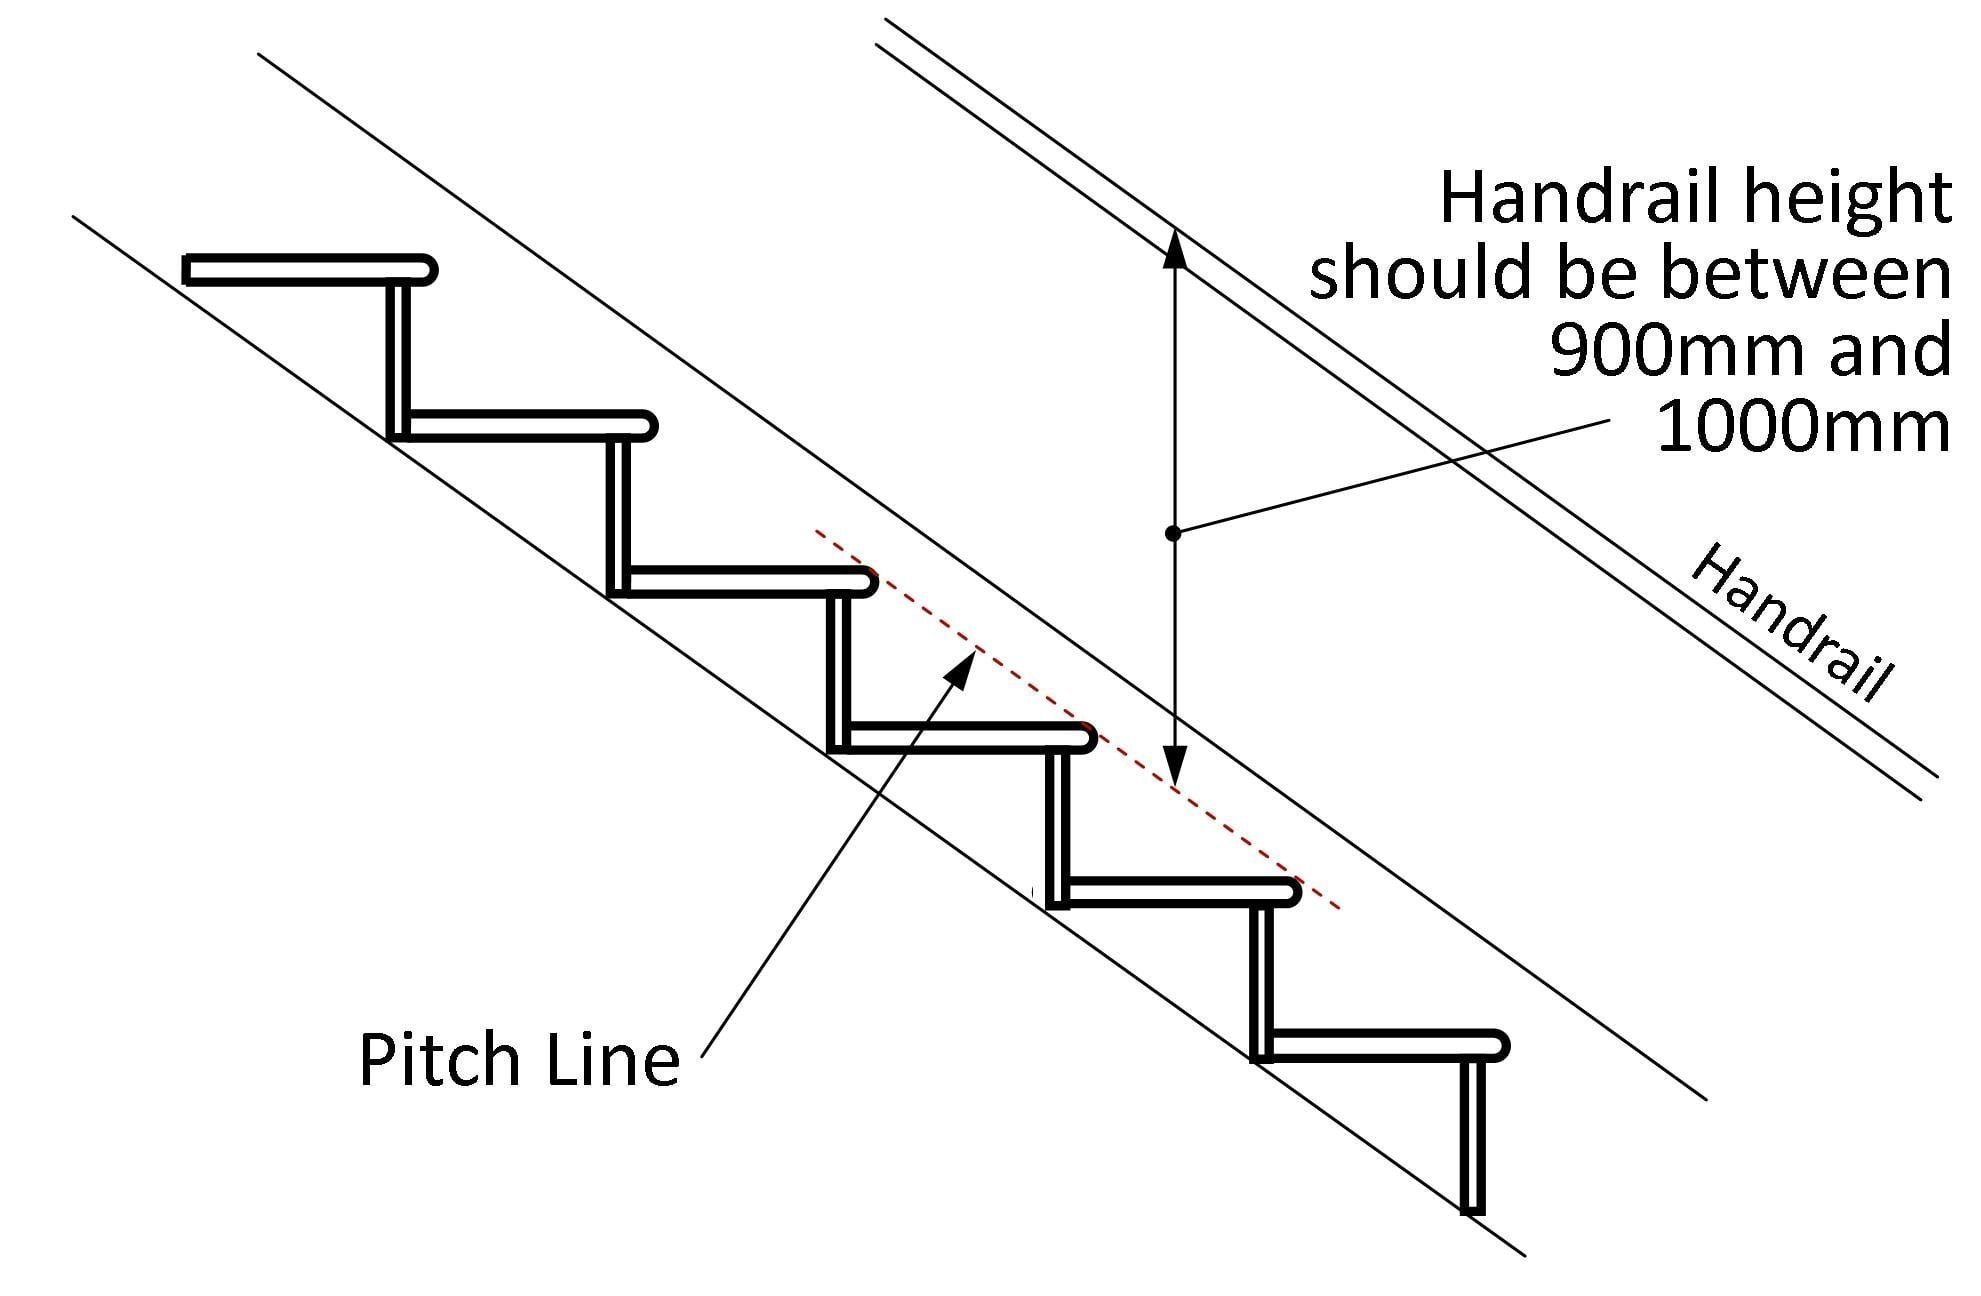 hight resolution of stairs should have a handrail on at least one side if they are less than 1m wide they should have a handrail on both sides if they are wider than 1m